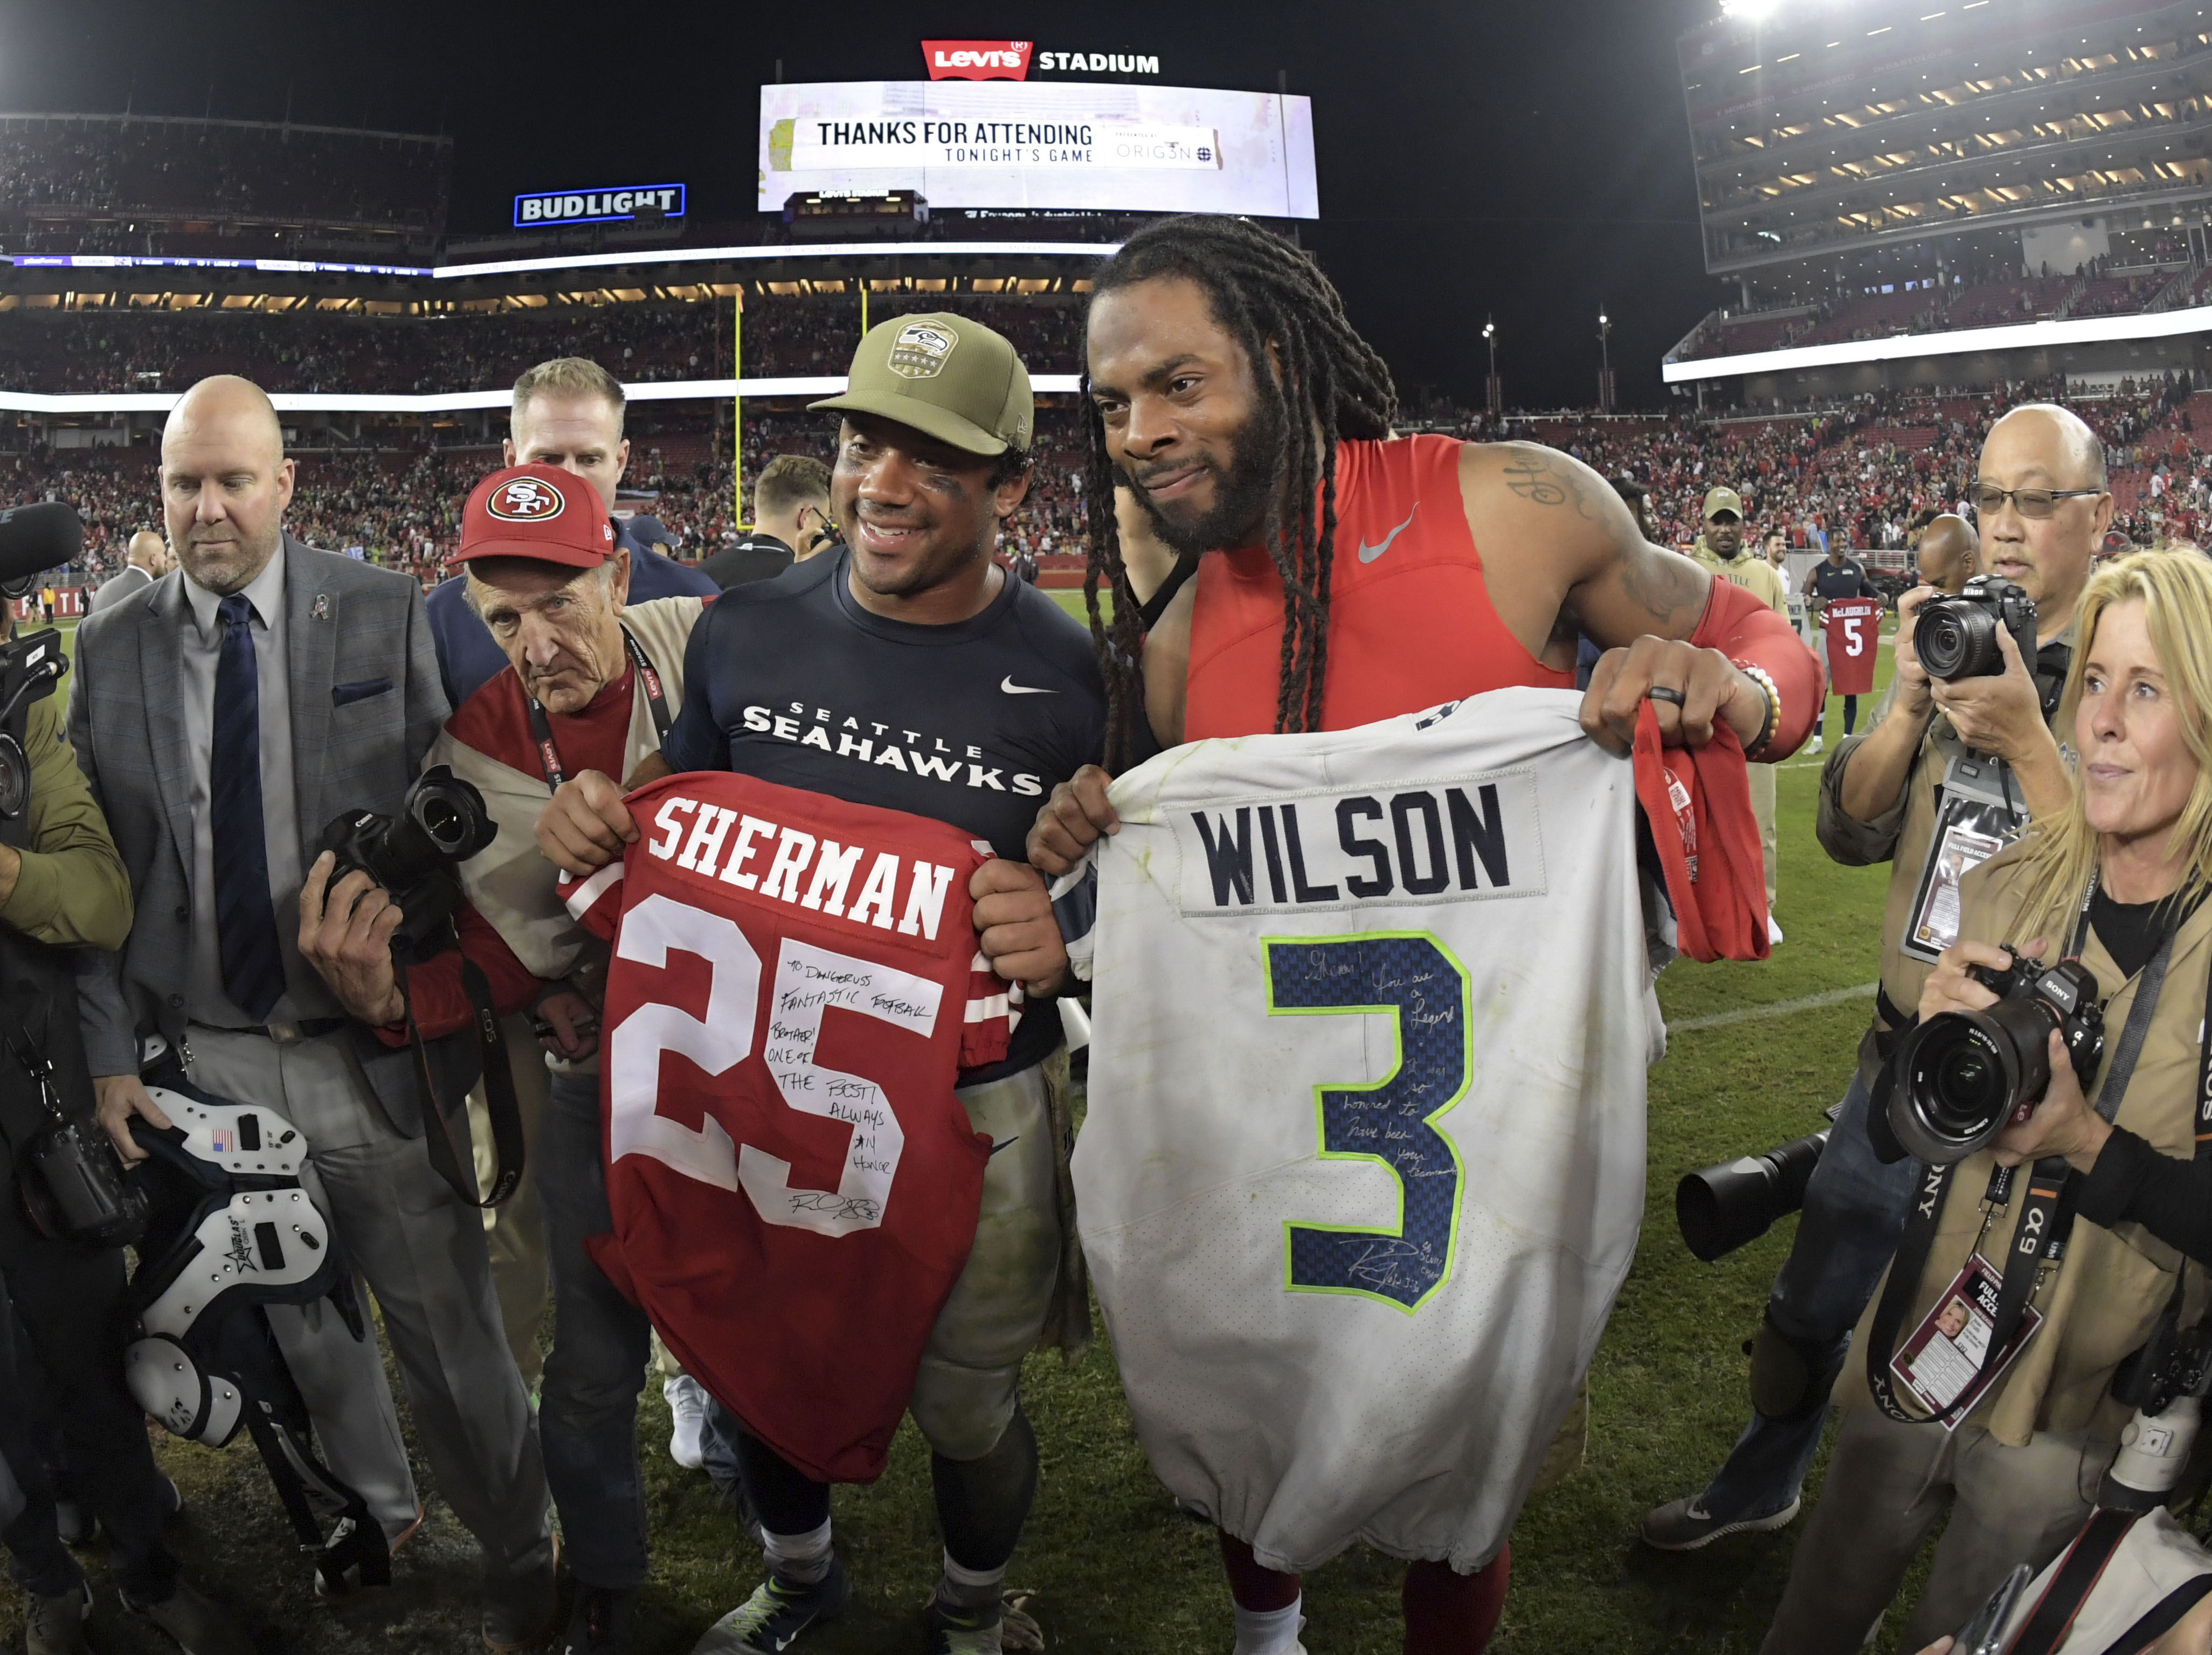 Russell Wilson, Richard Sherman prove there's no beef between them after game